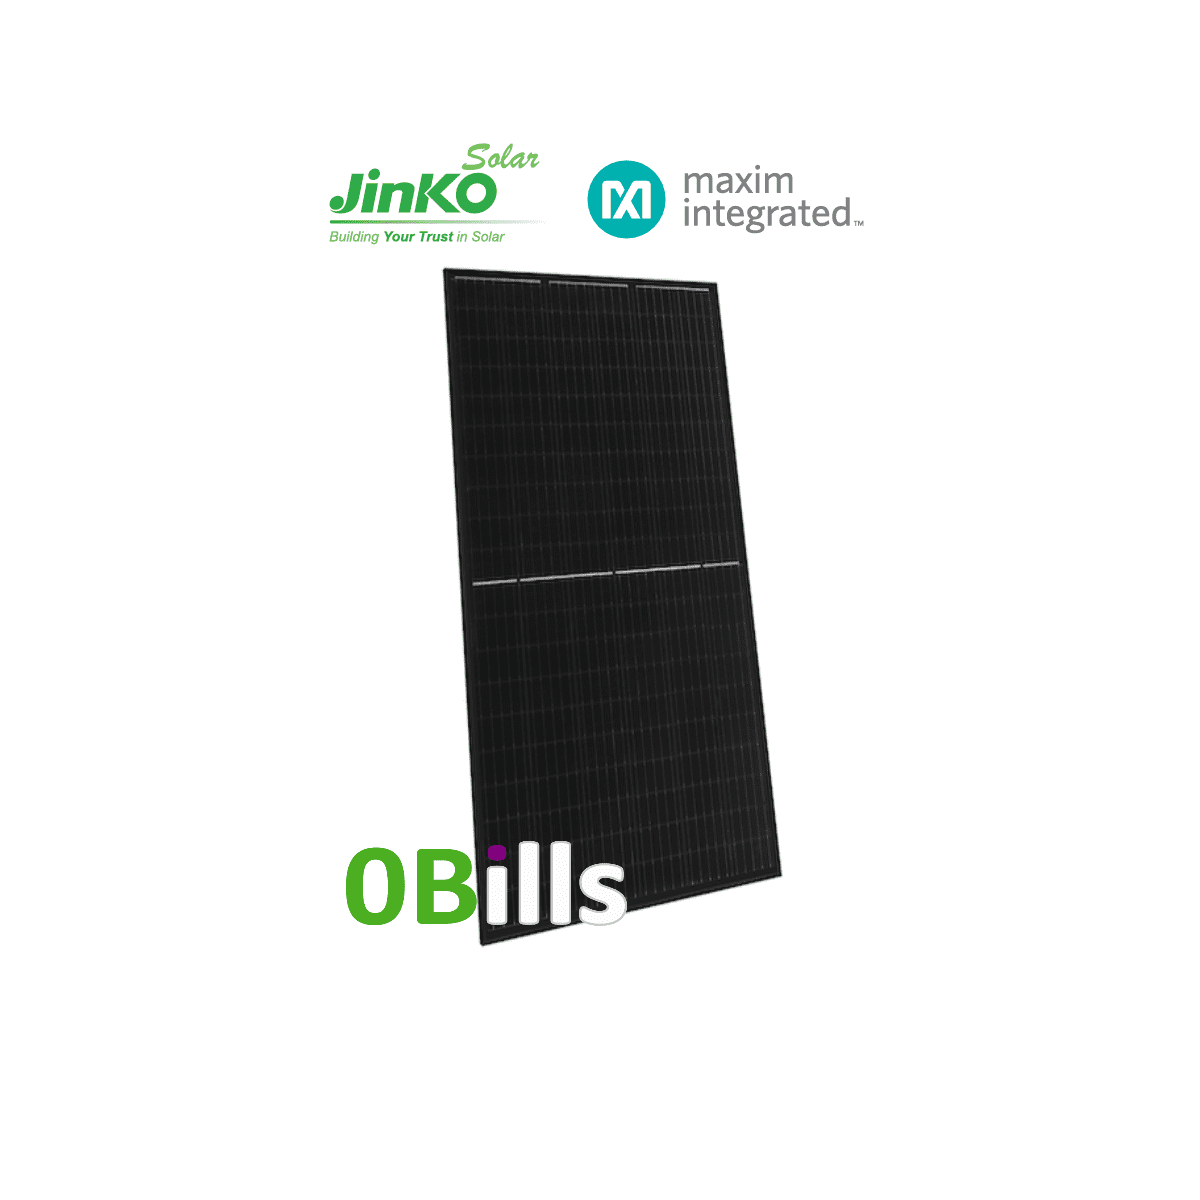 Jinko Cheetah Maxim Integrated 320W Solar Panel JKMS320M-60HB-MX3 for Sale